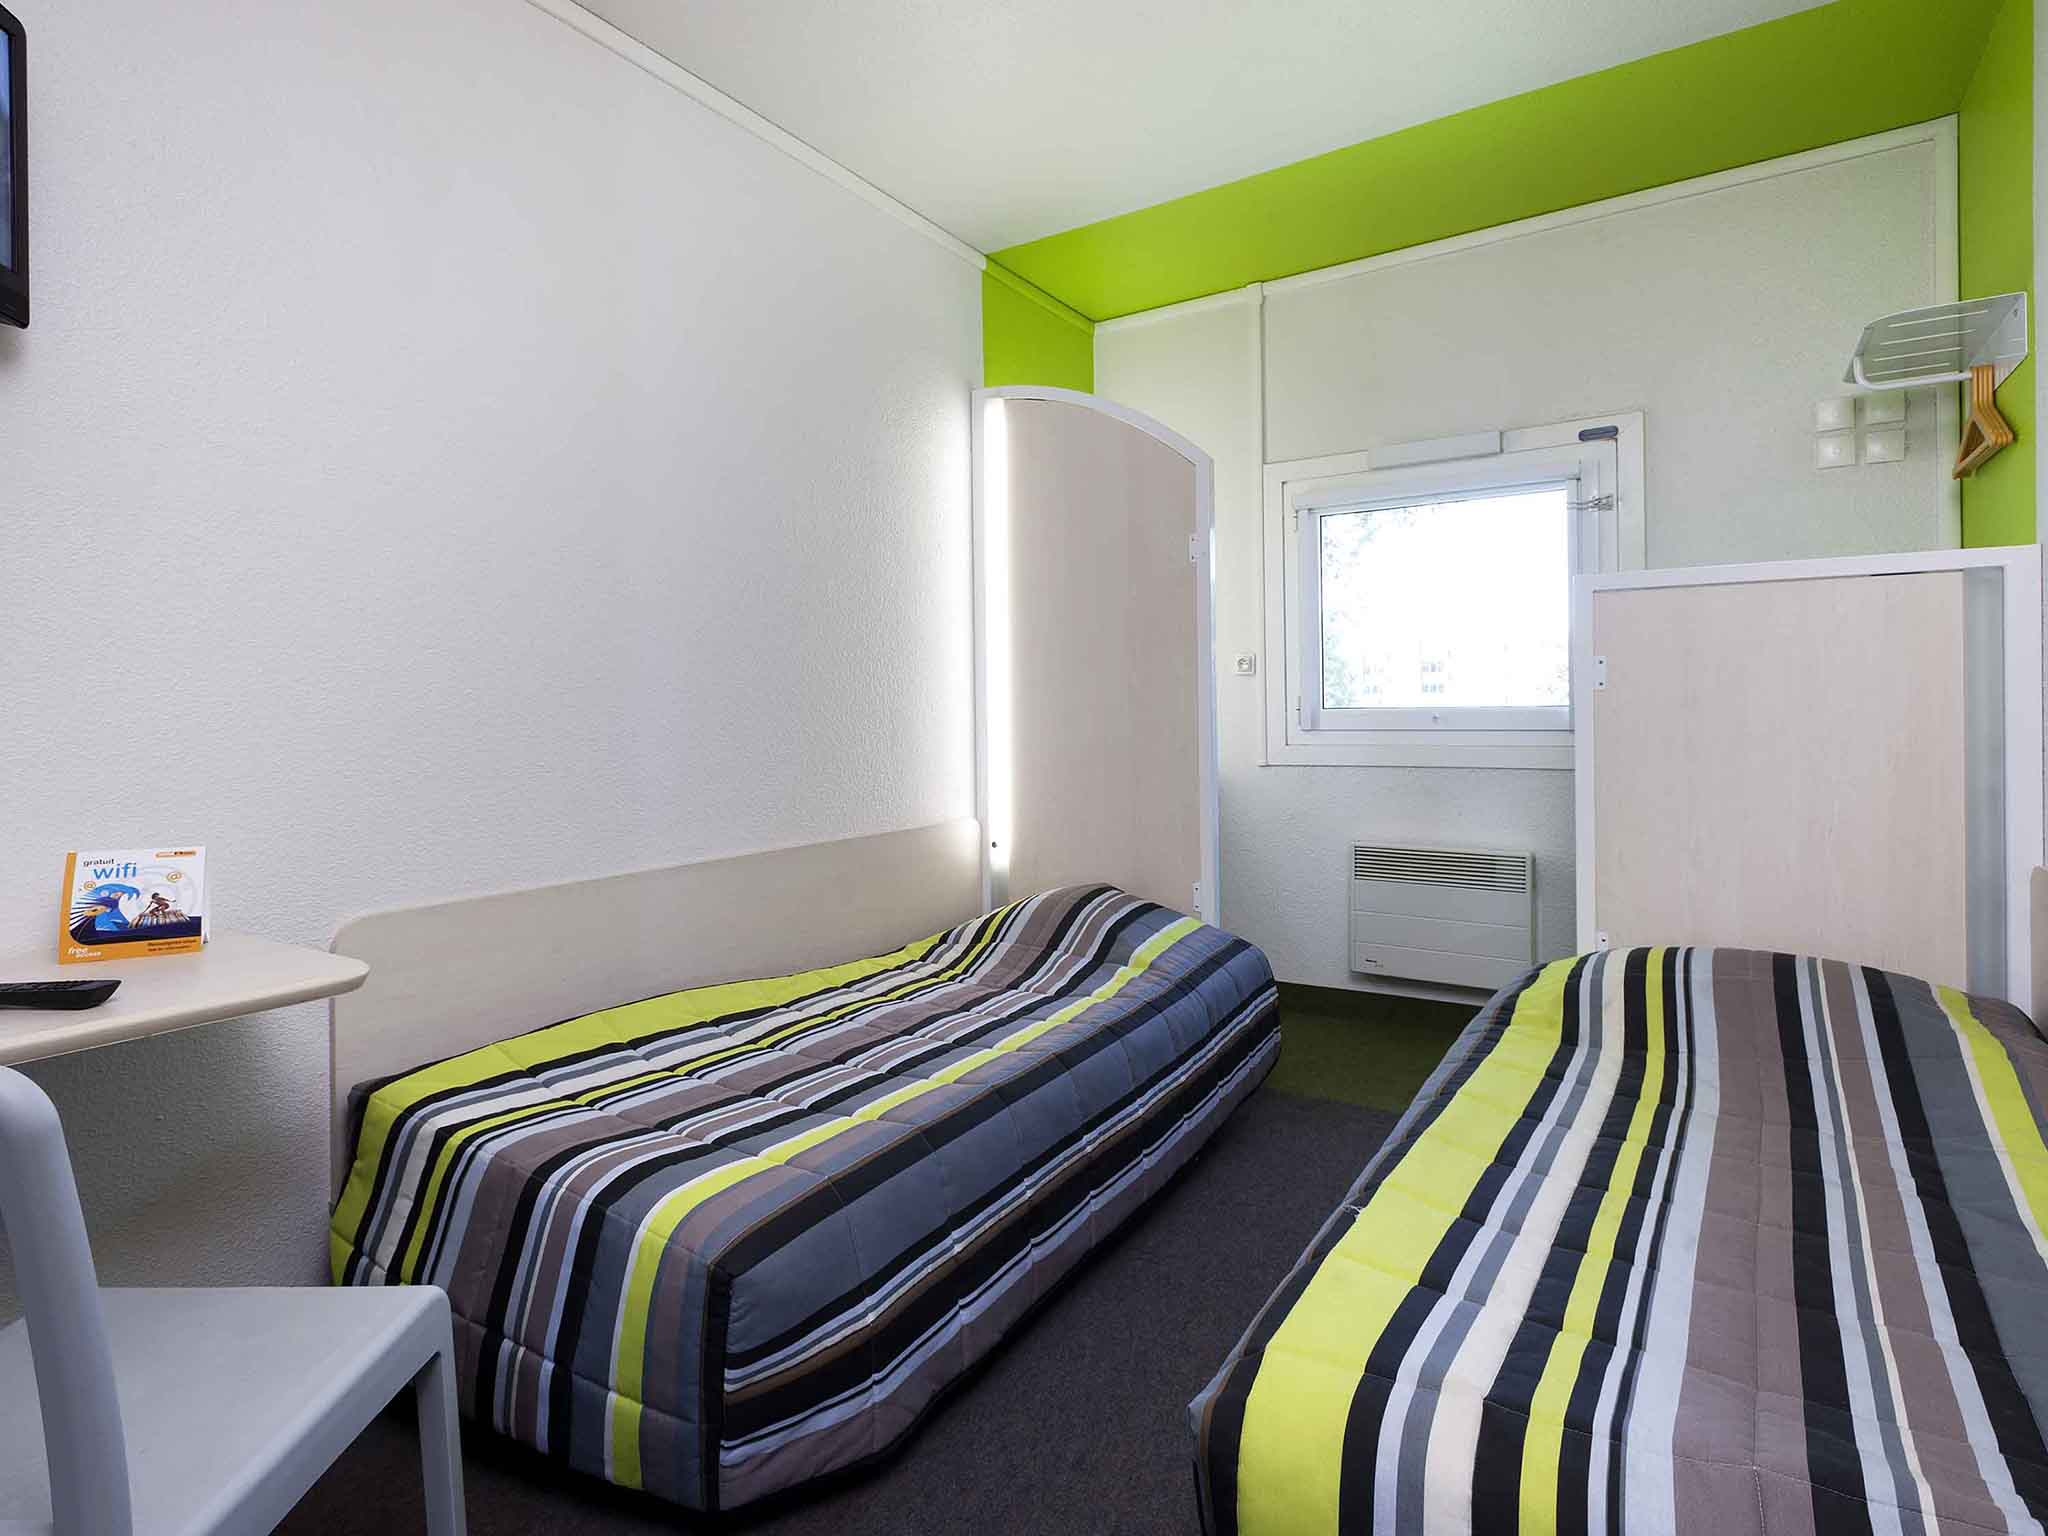 Hotell – hotelF1 Valenciennes Douchy-les-Mines